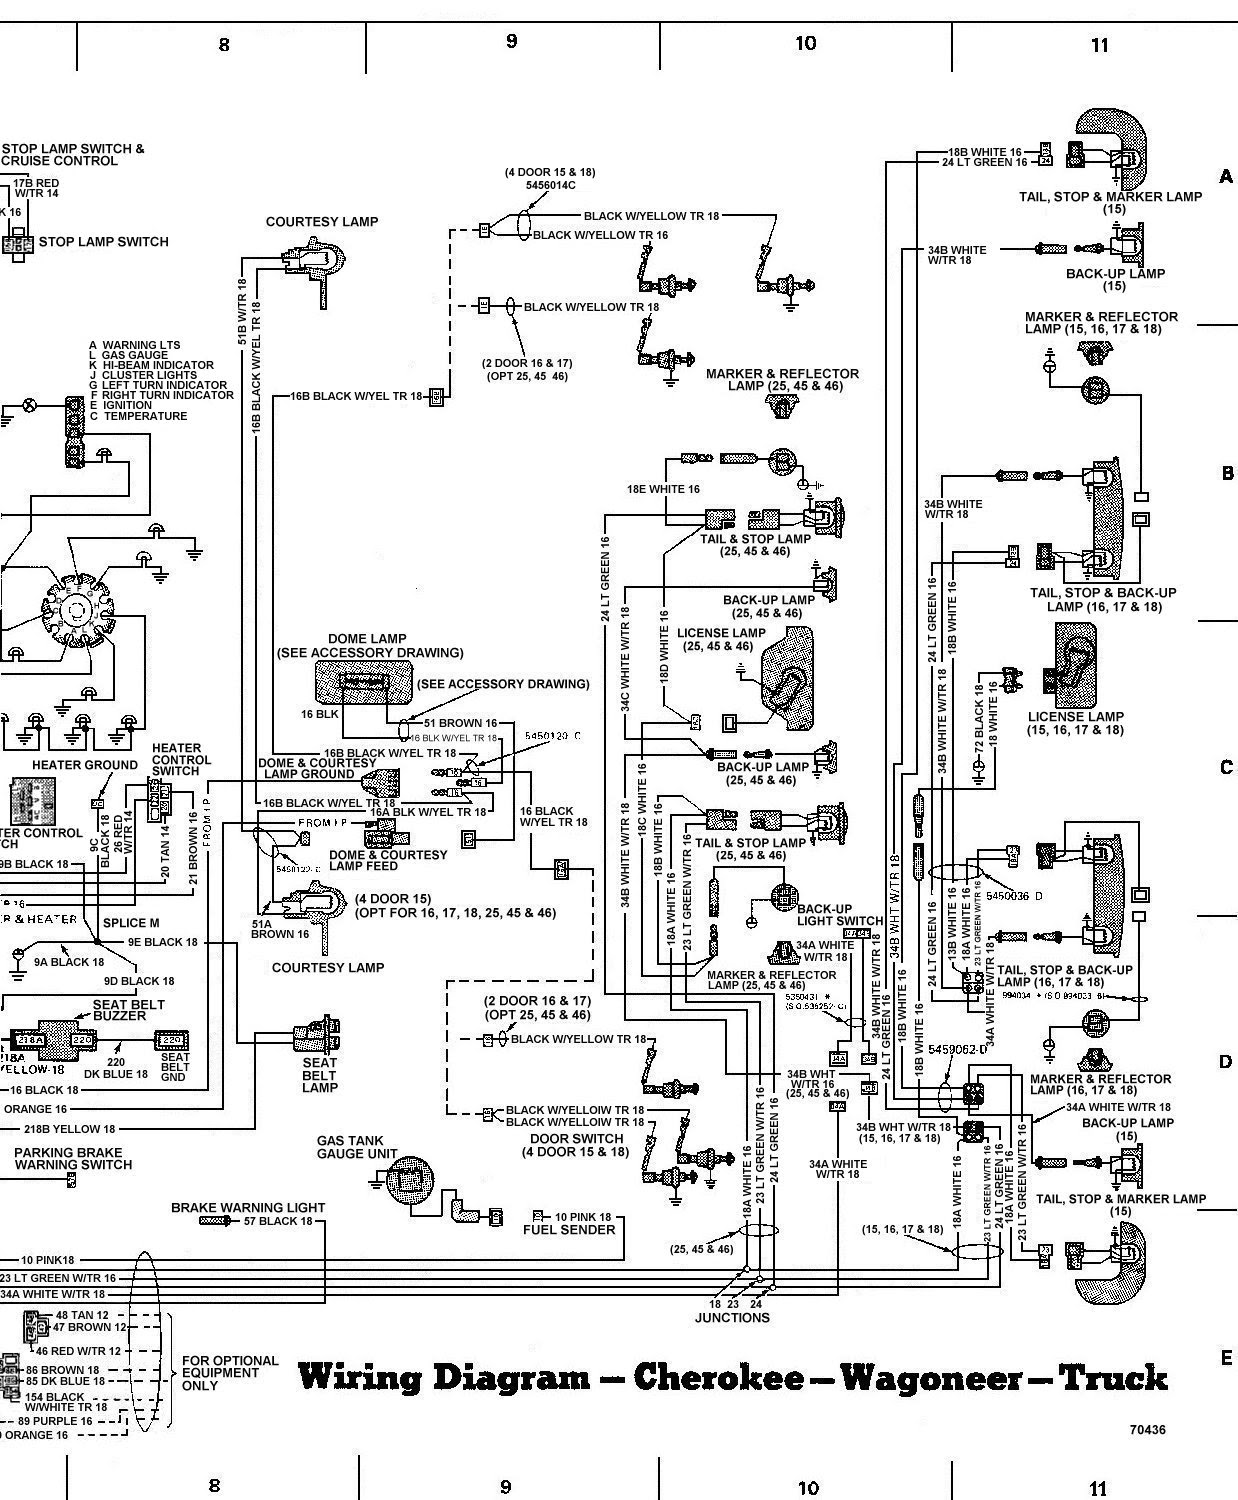 Wiring Diagram Source: 2004 Jeep Grand Cherokee Door